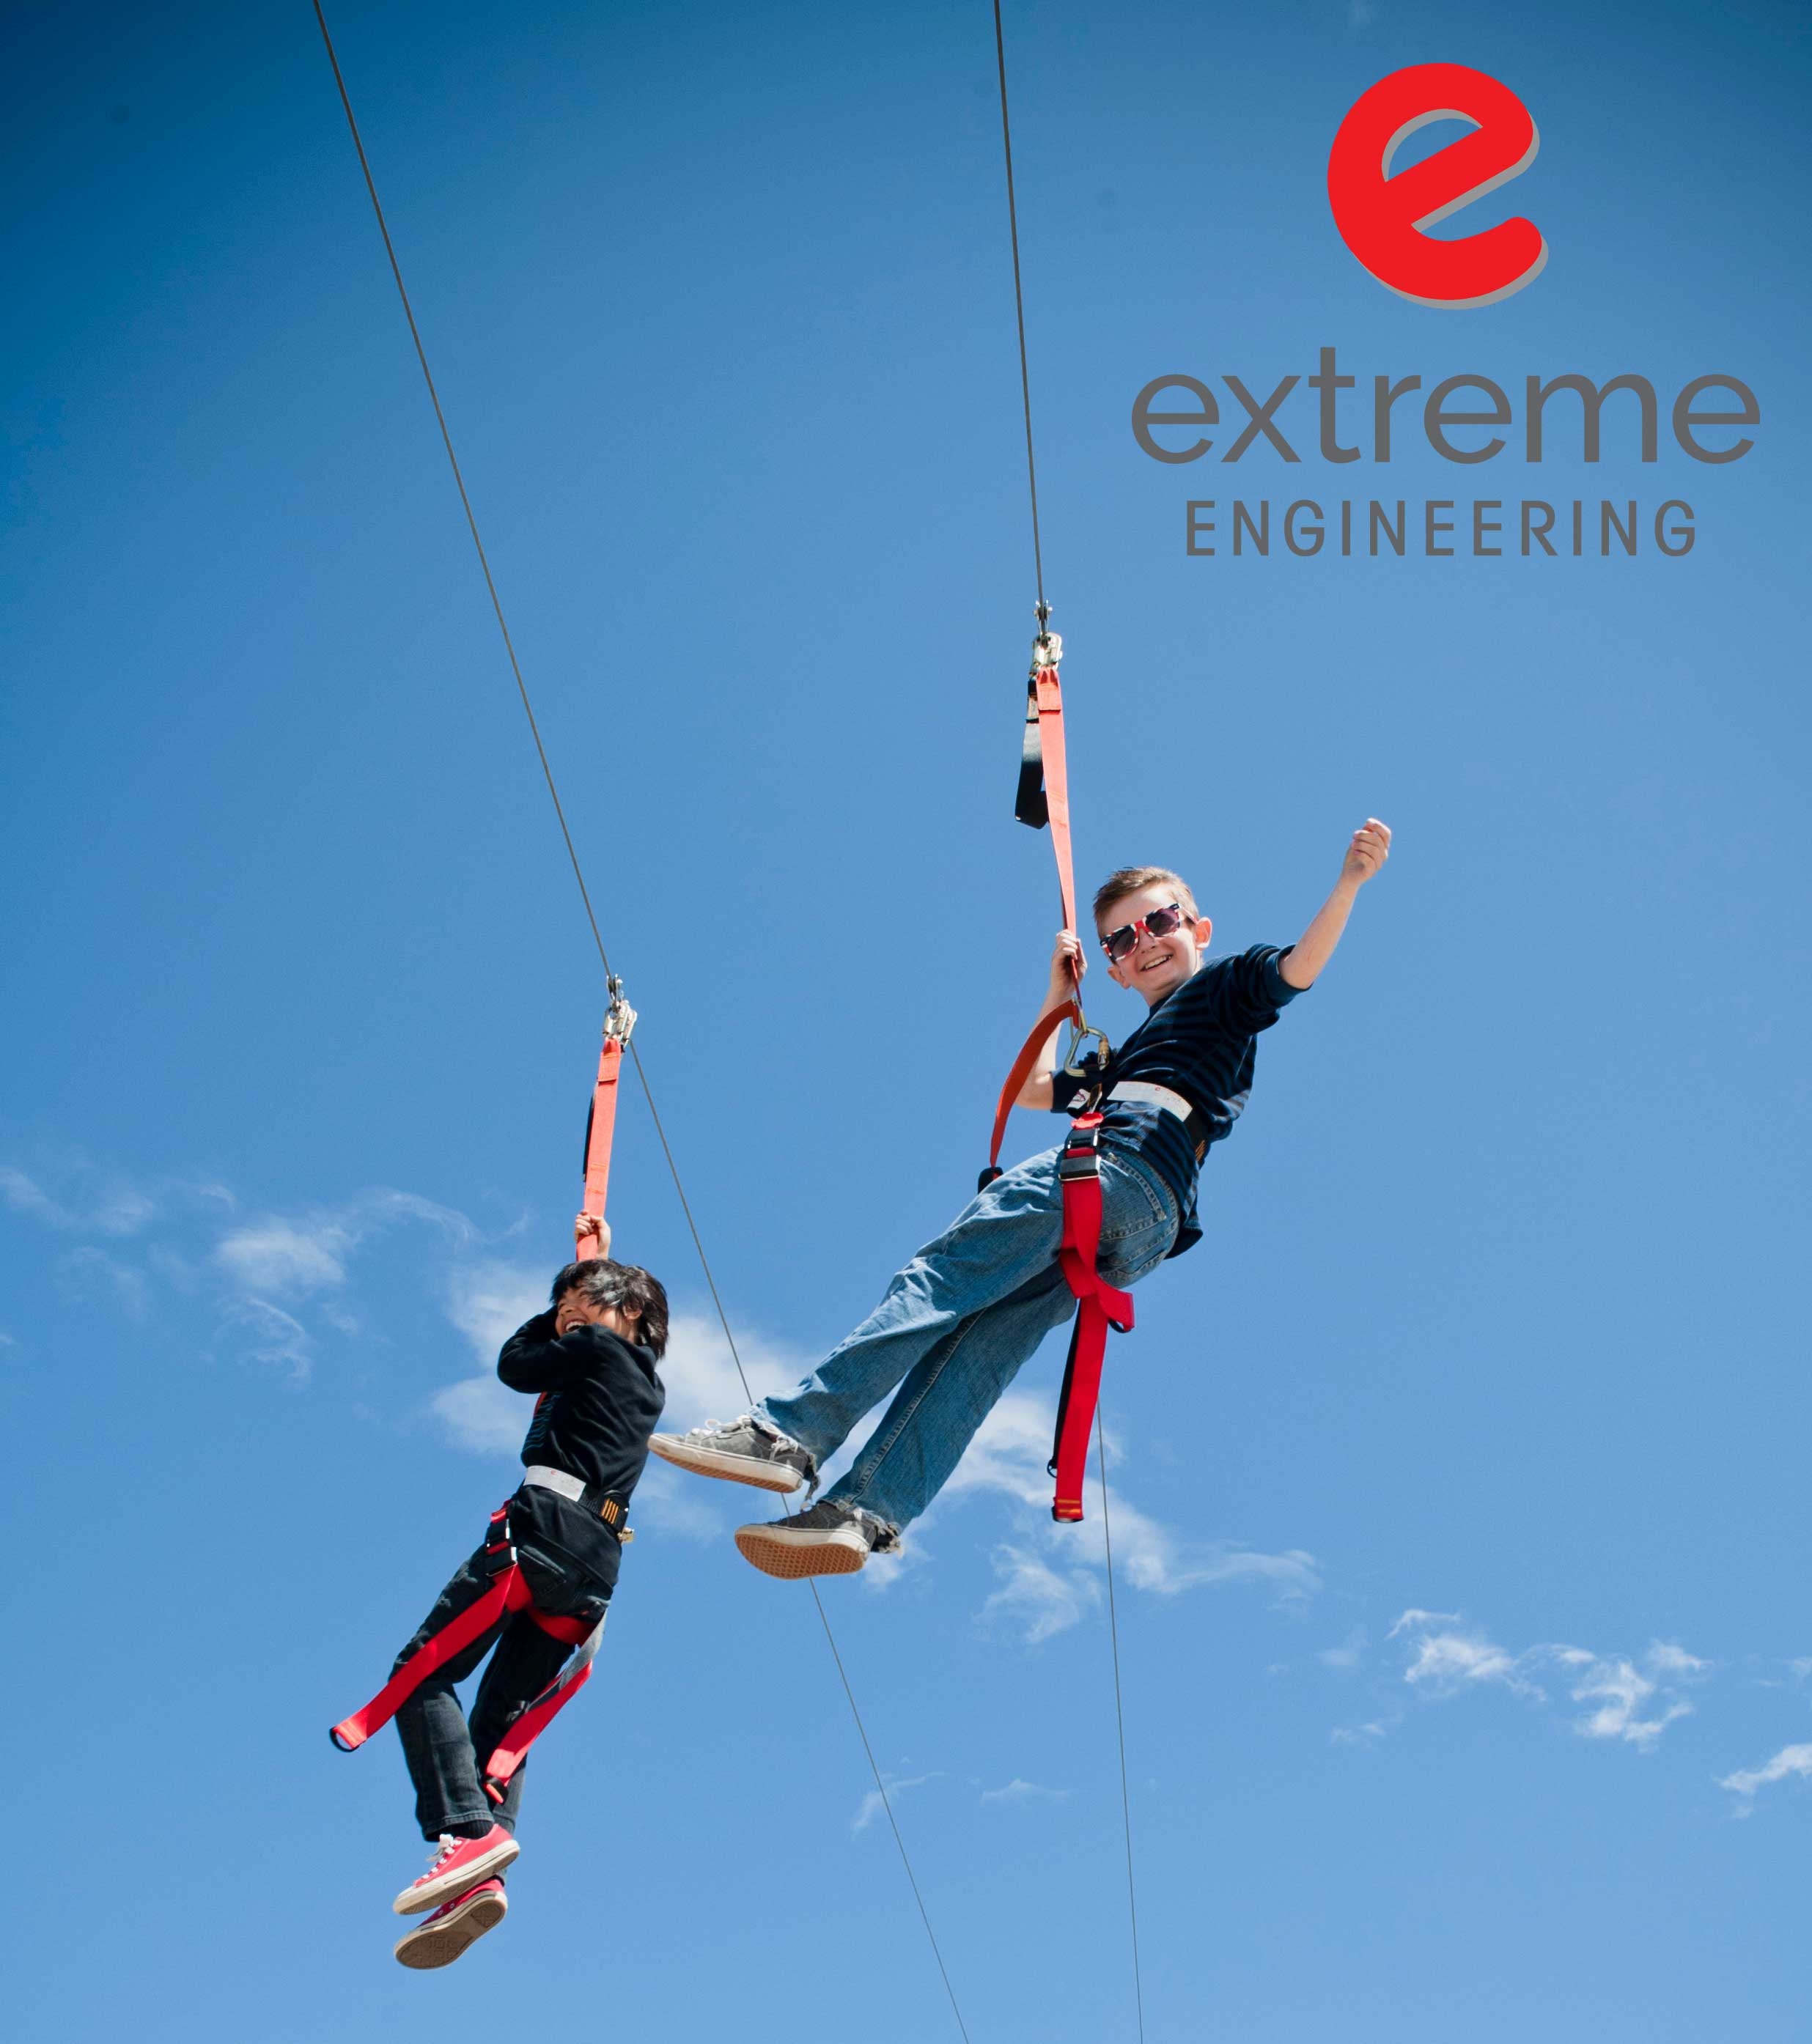 International News – Extreme Engineering Provides Zip Lining at De Palm Island Resorts Aruba